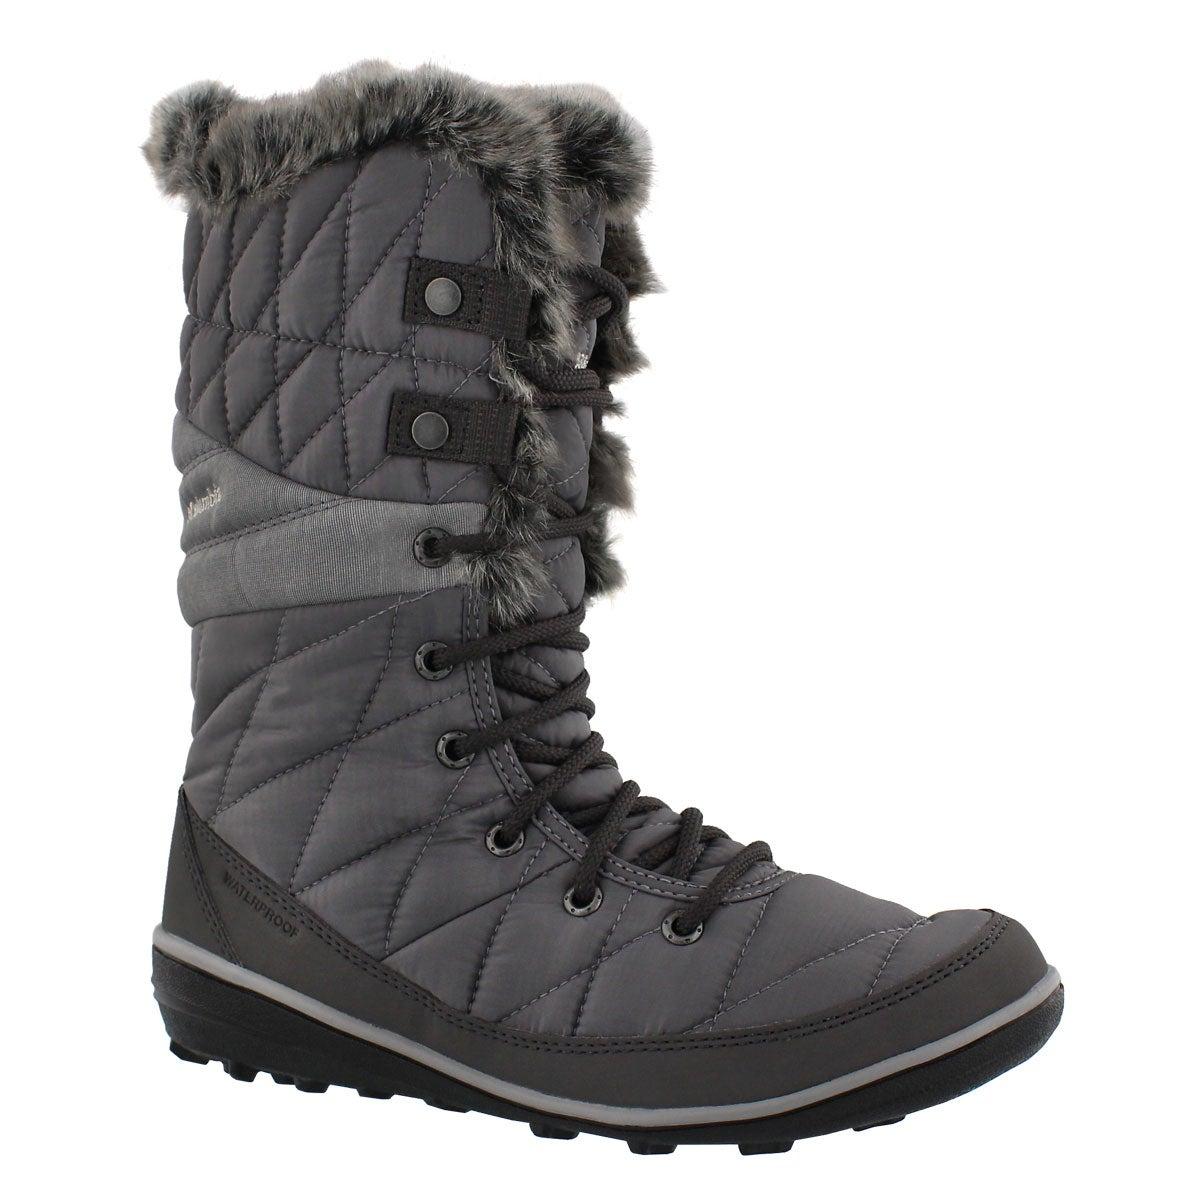 Lds Heavenly OmniHeat quarry snow boot